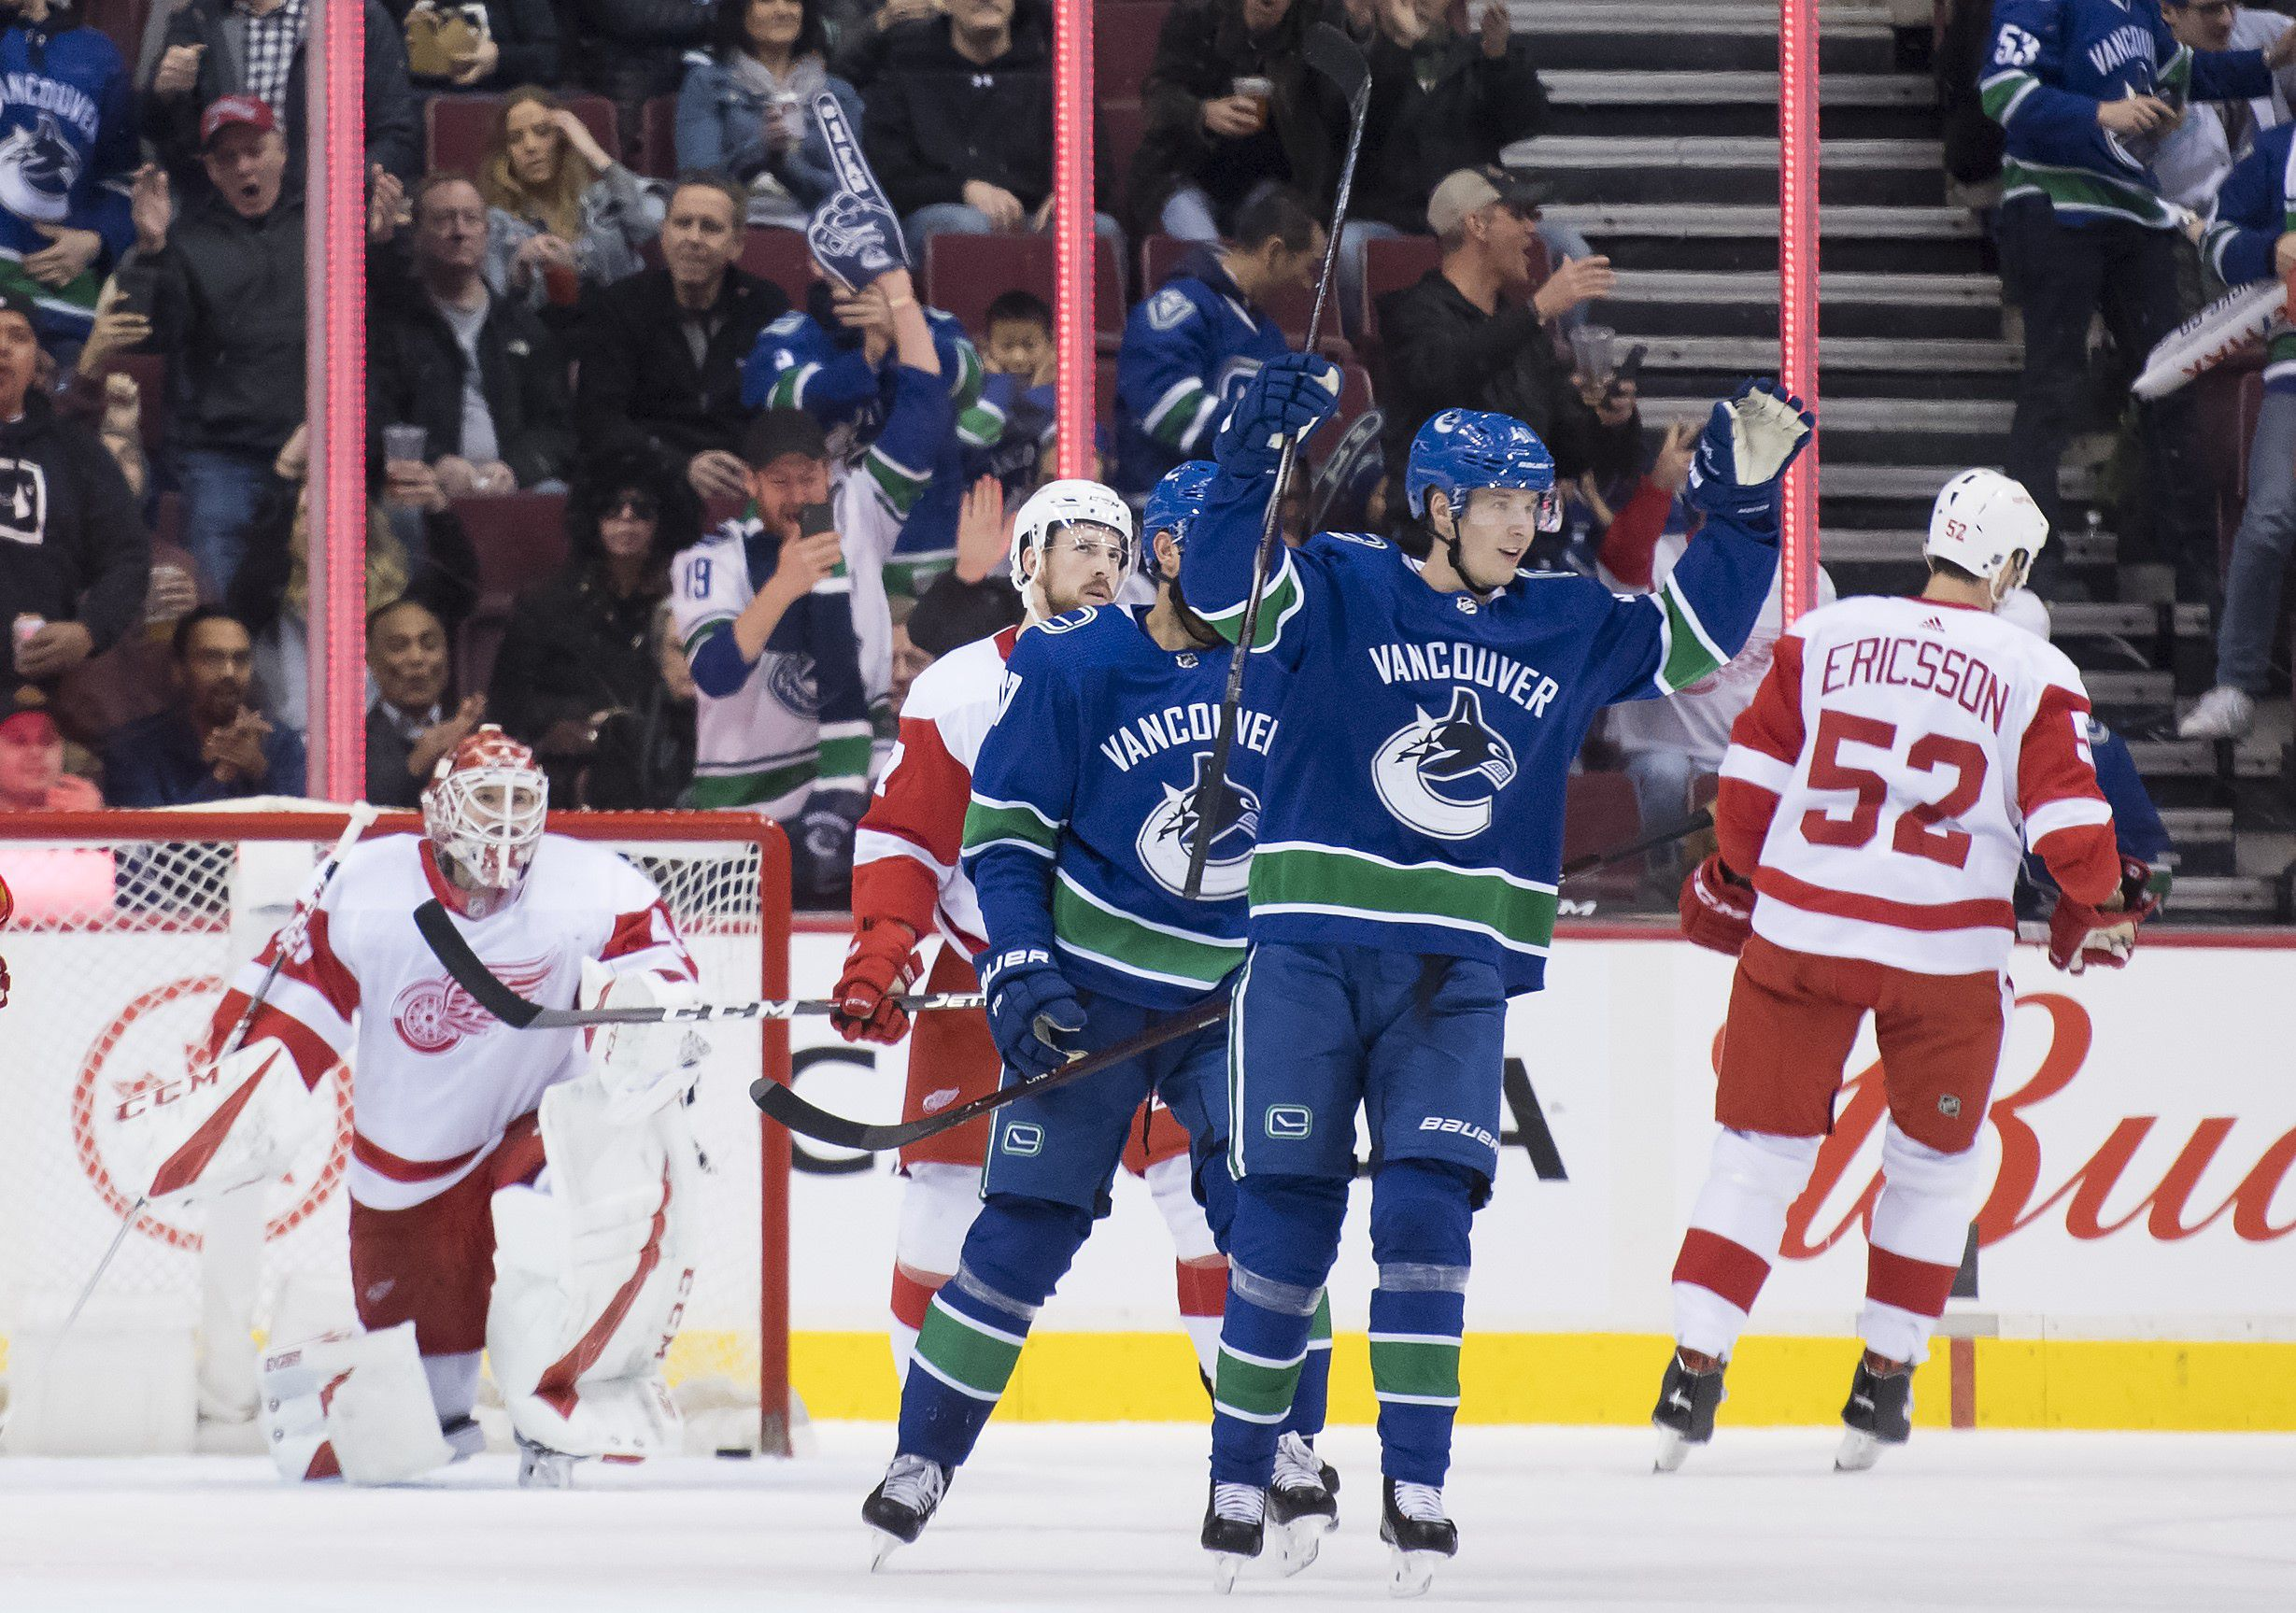 e95c40345 Elias Pettersson leads Canucks to victory over Red Wings in return from  injury - The Globe and Mail